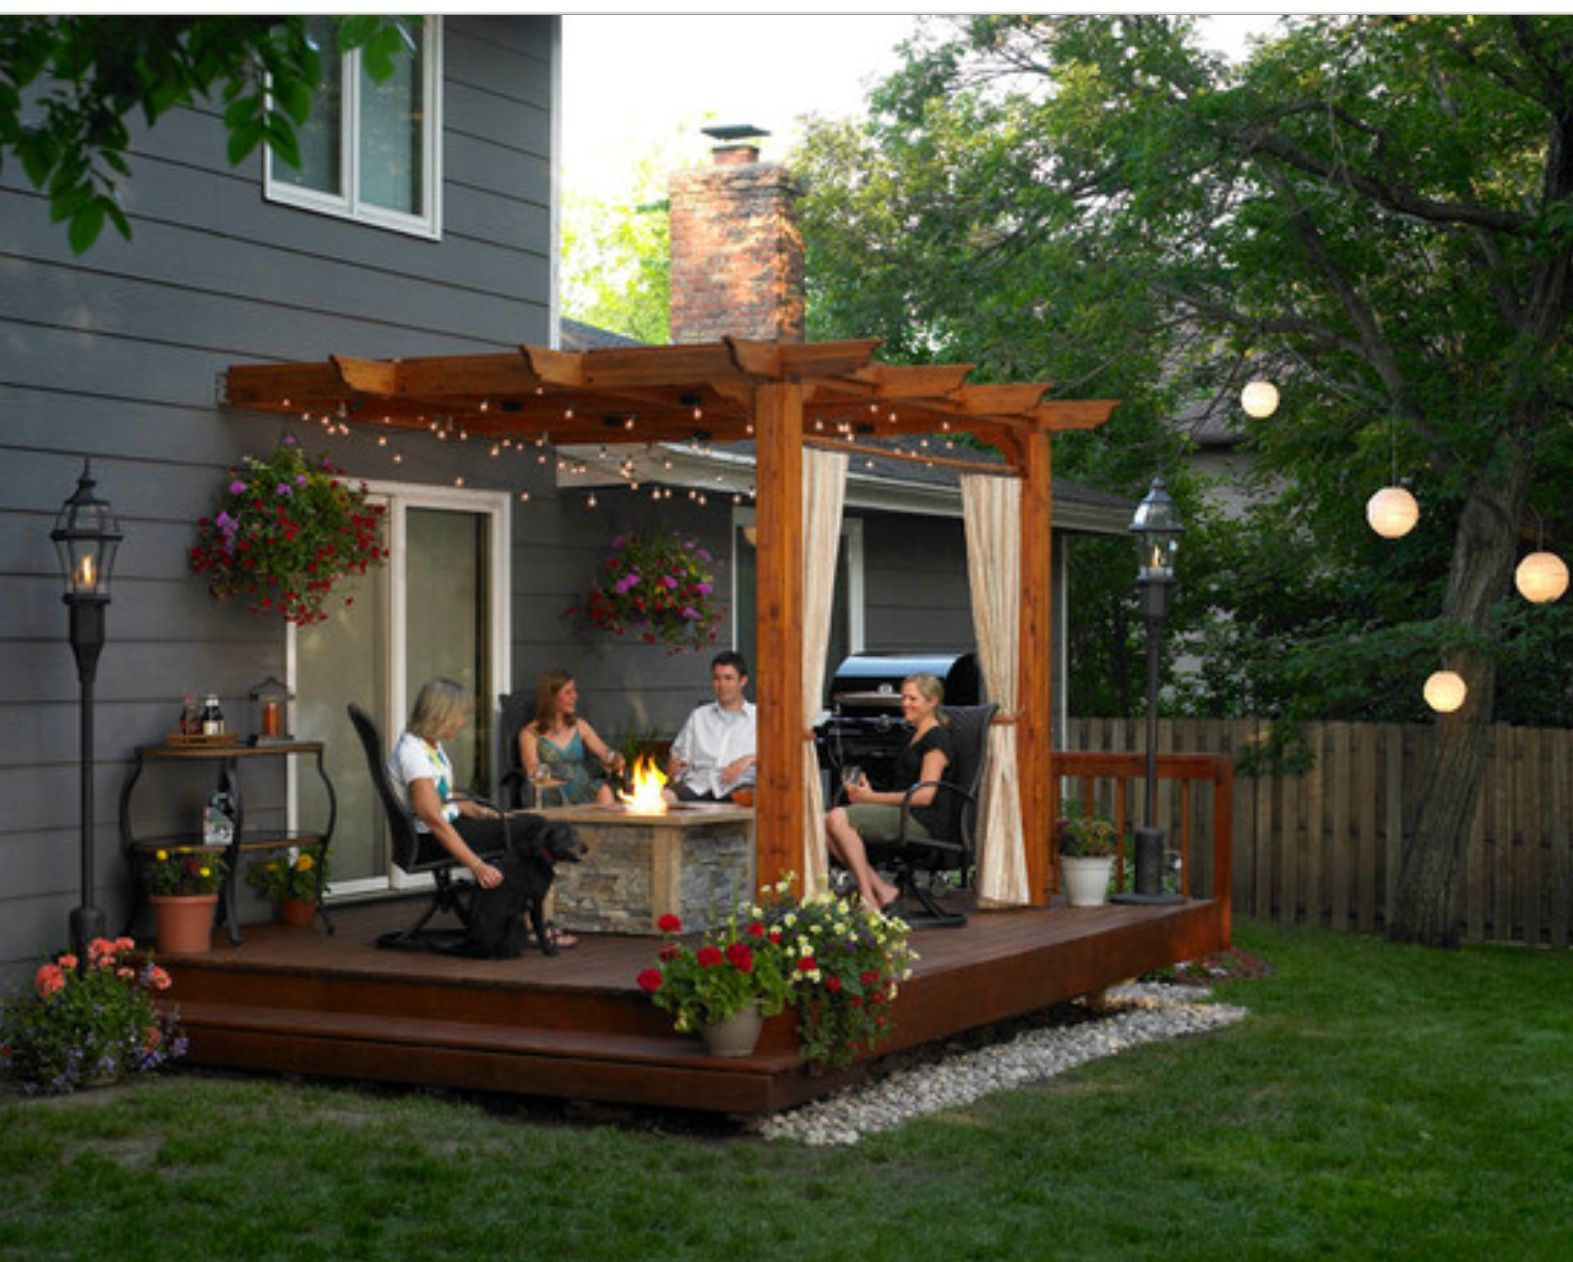 Medium Of Pergola Ideas For Small Backyards